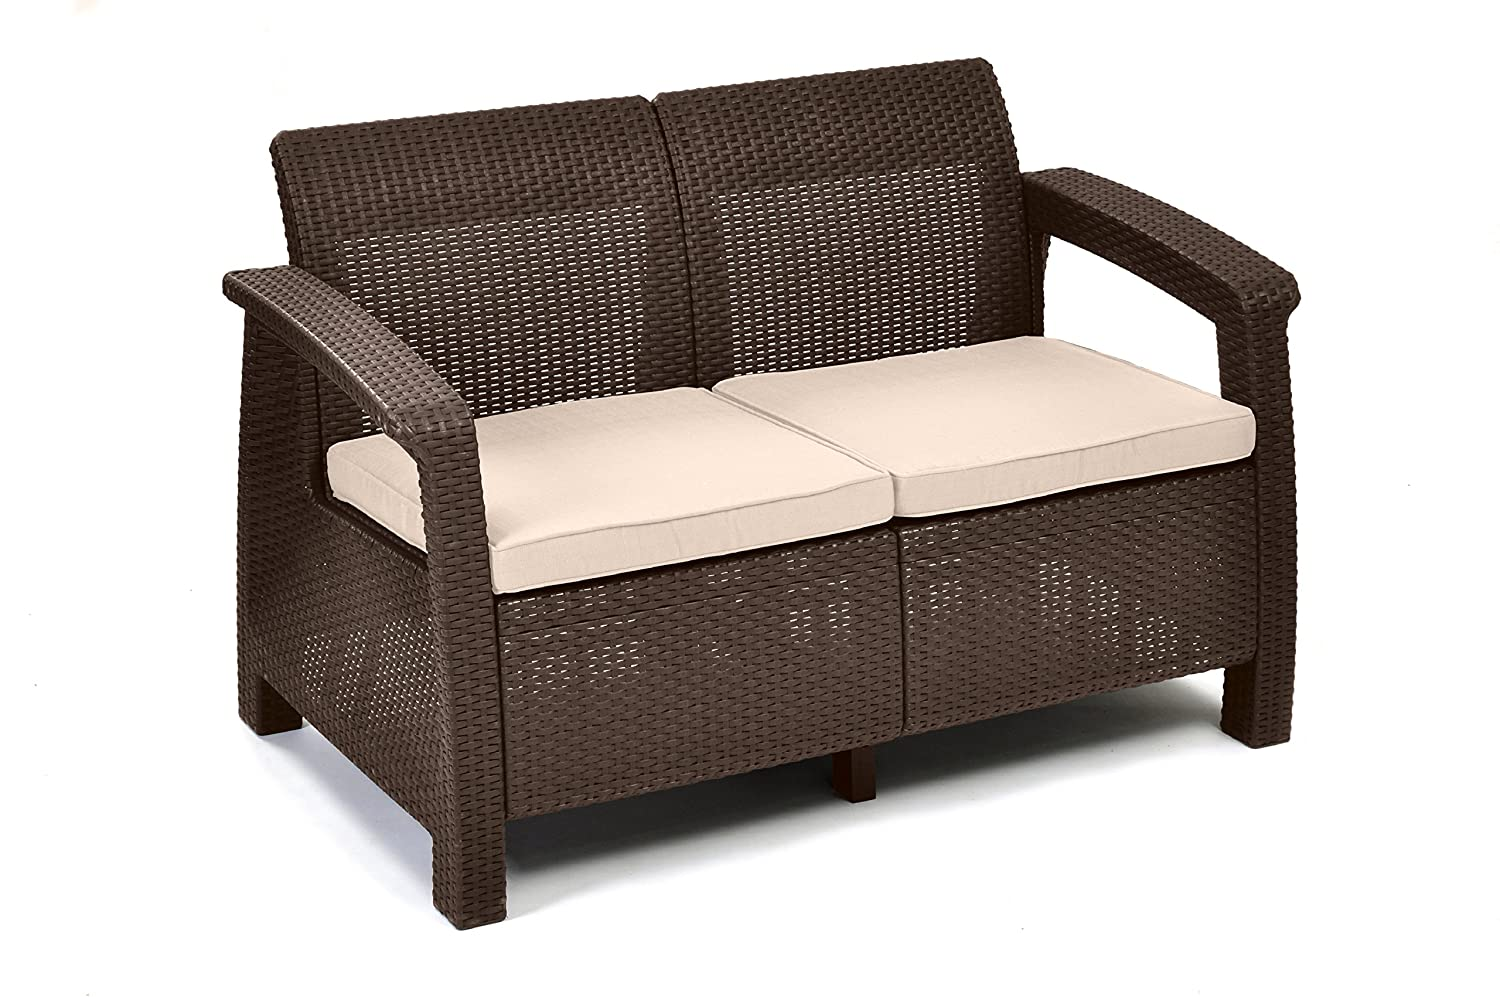 amazoncom keter corfu love seat all weather outdoor patio garden furniture w cushions brown patio loveseats patio lawn garden